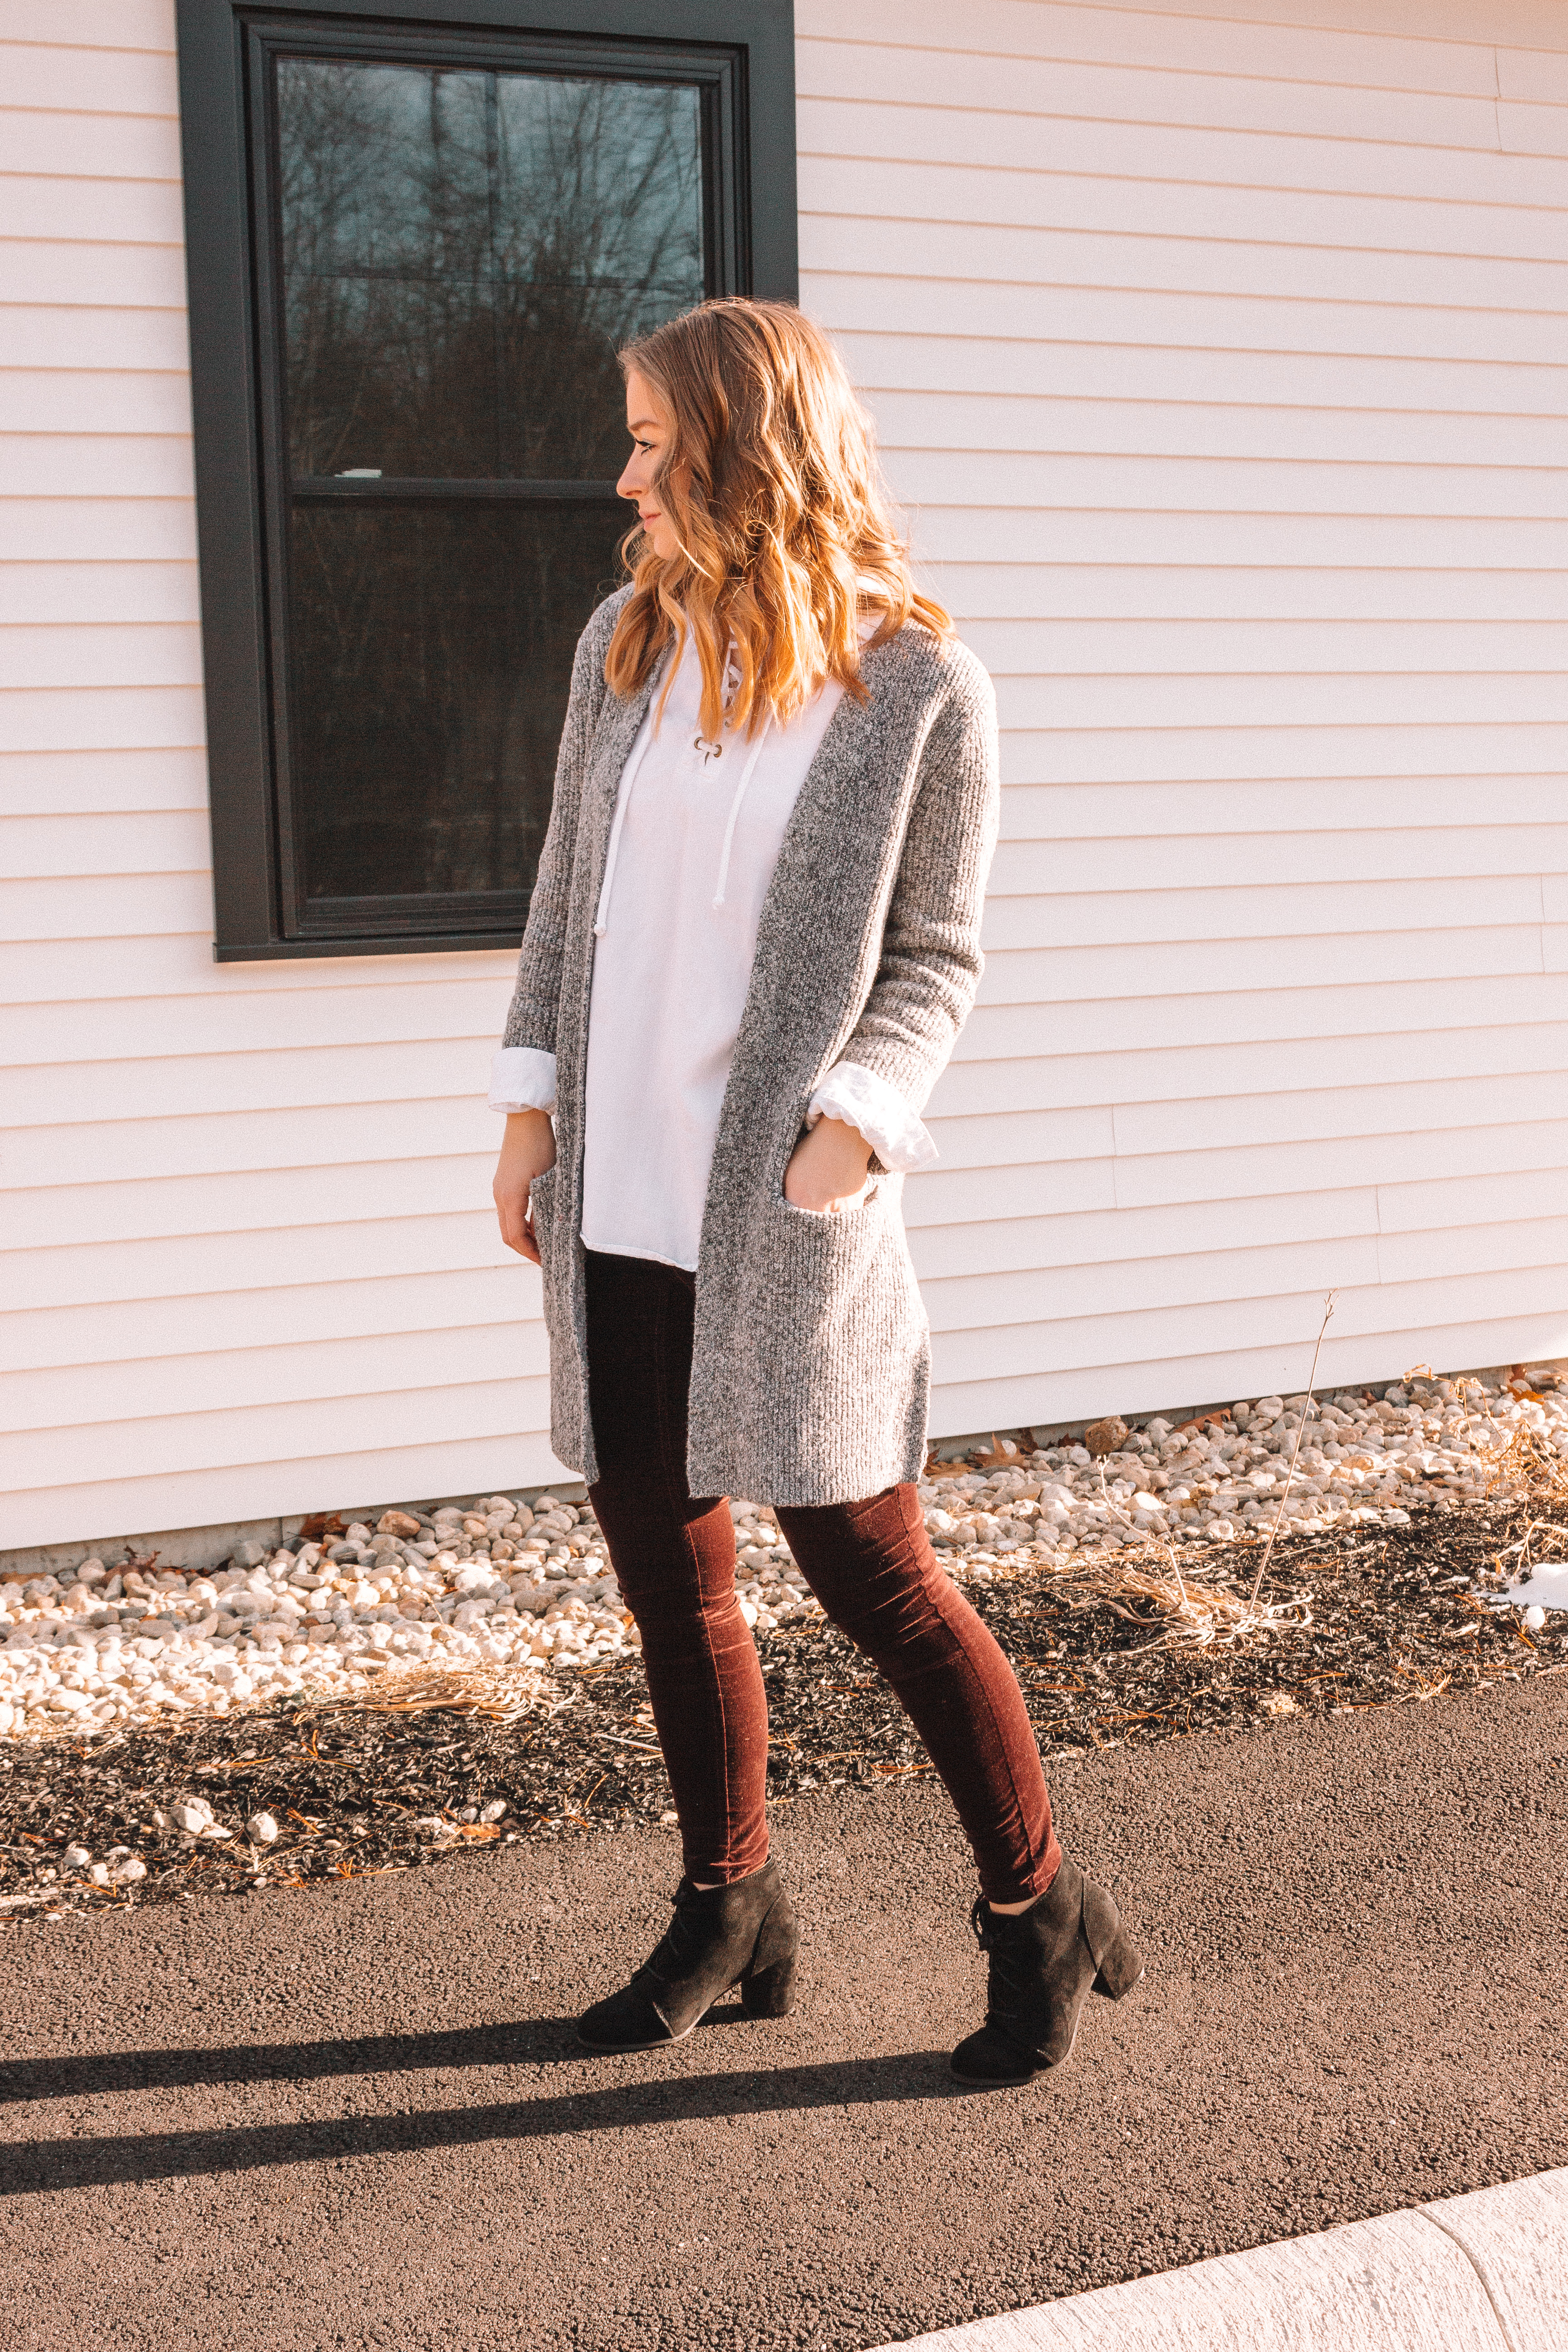 How to Use LIKEtoKNOW.it and Shop My Posts   Hey Its Camille Grey #ltk.it #fashion #liketonkowit #style